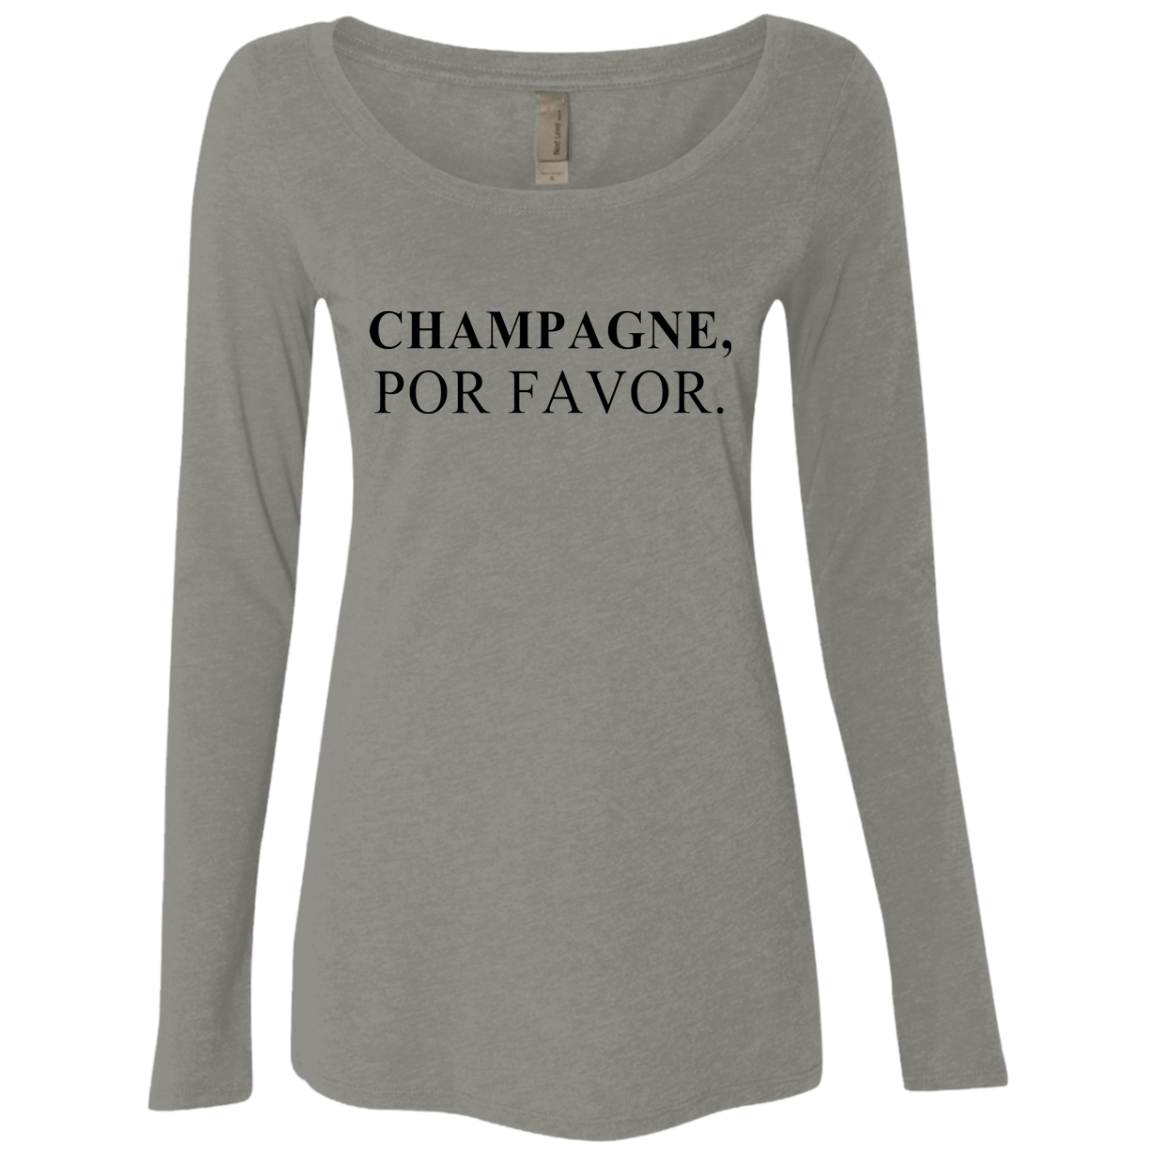 Champagne Por Favor Women's Long Sleeve Tee - Trendy Tees